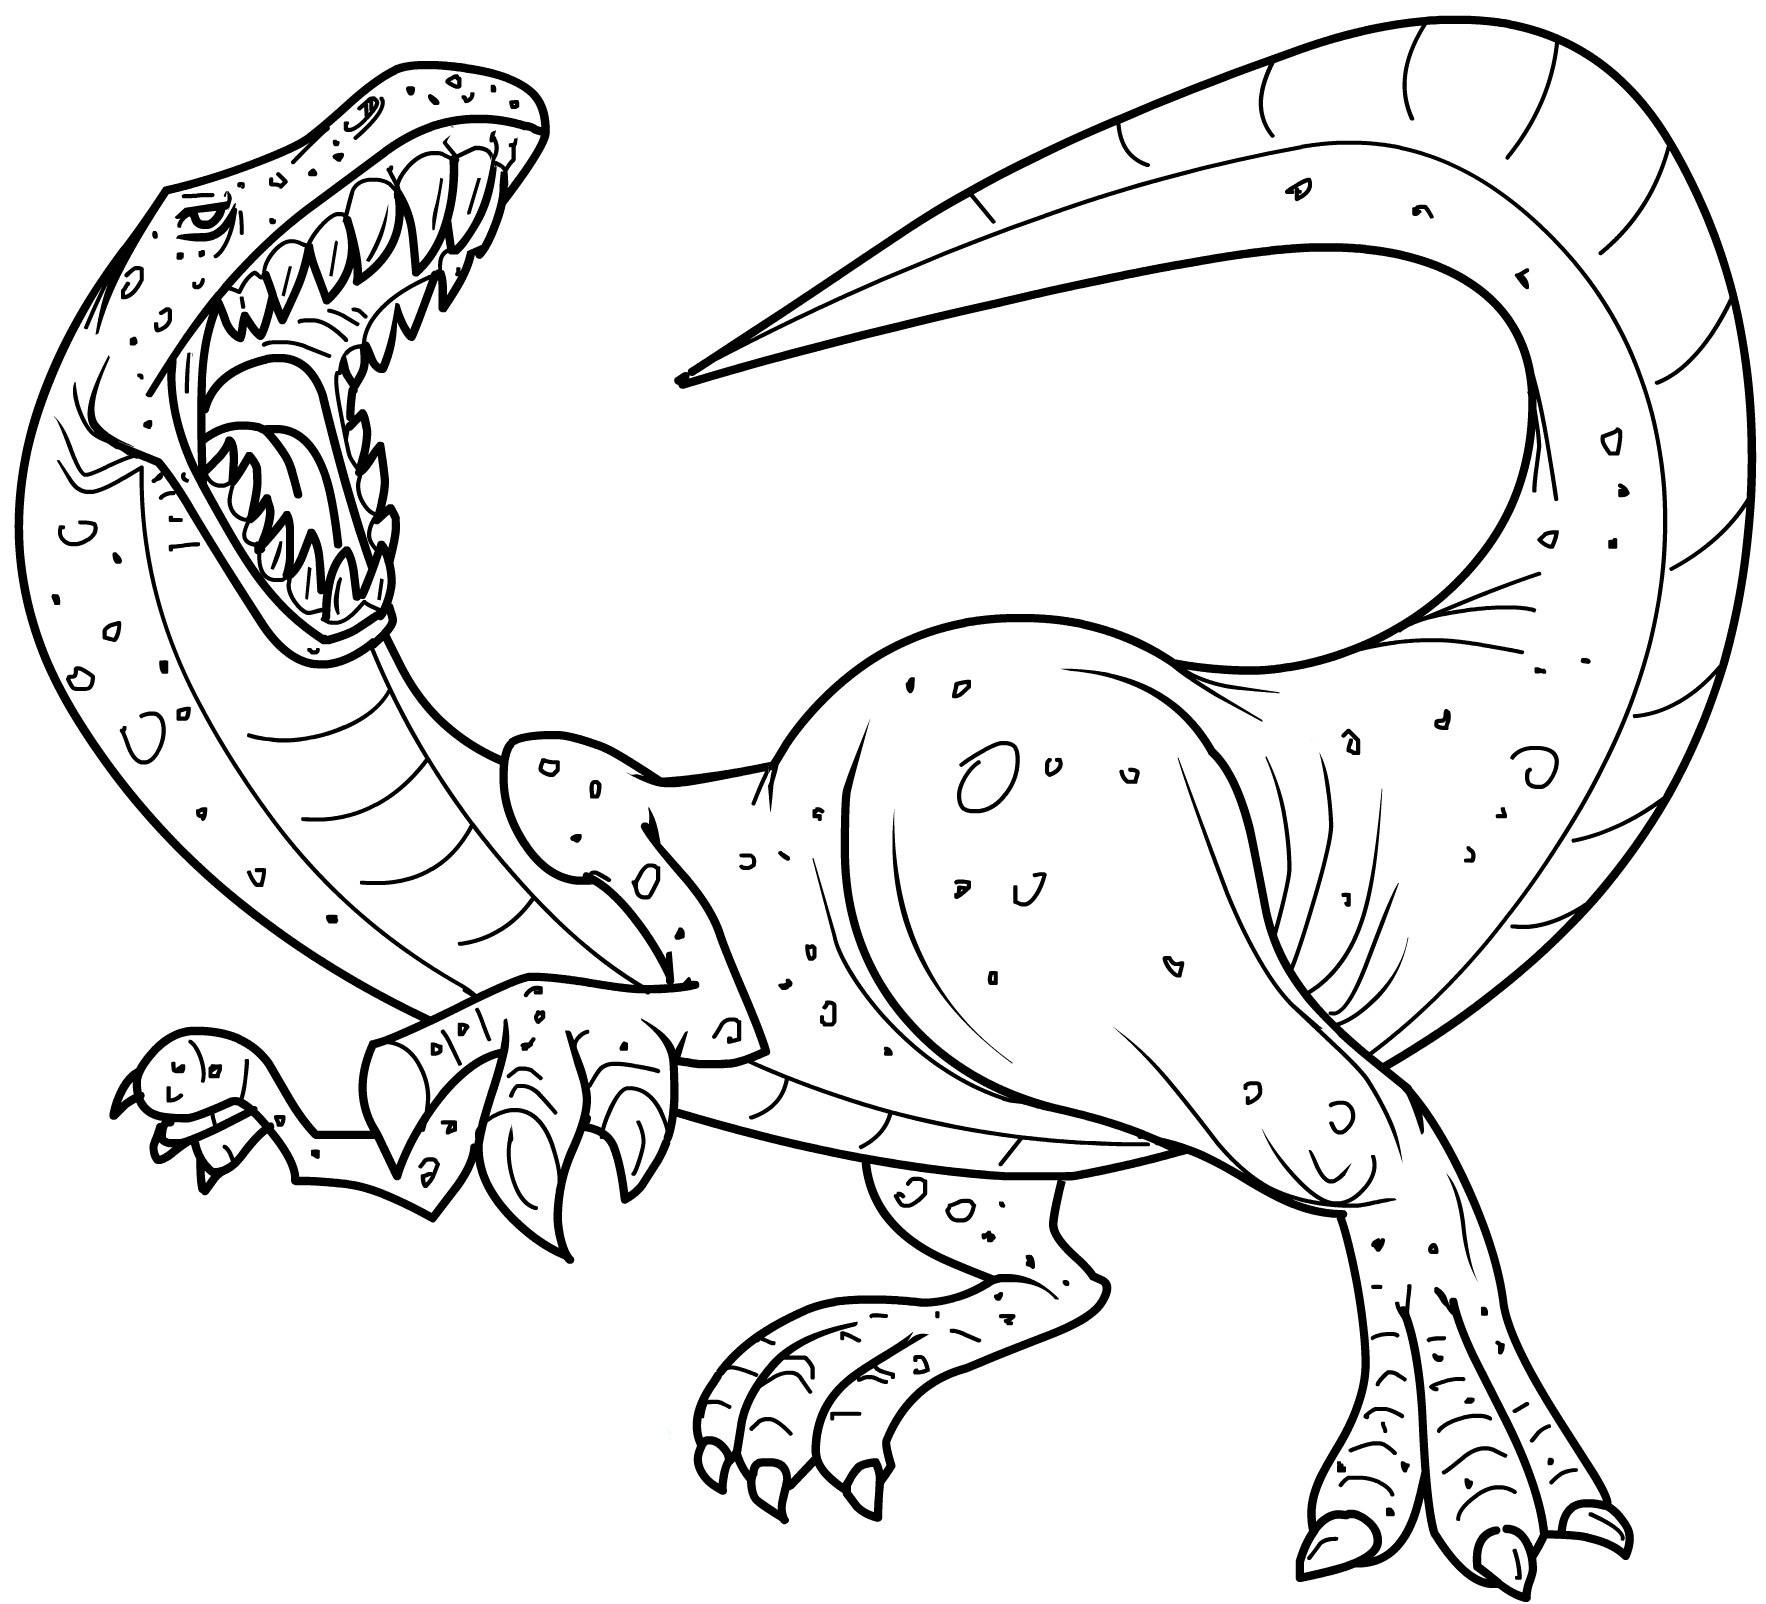 1766x1604 Free Printable Dinosaur Coloring Pages In Funny Draw Kids